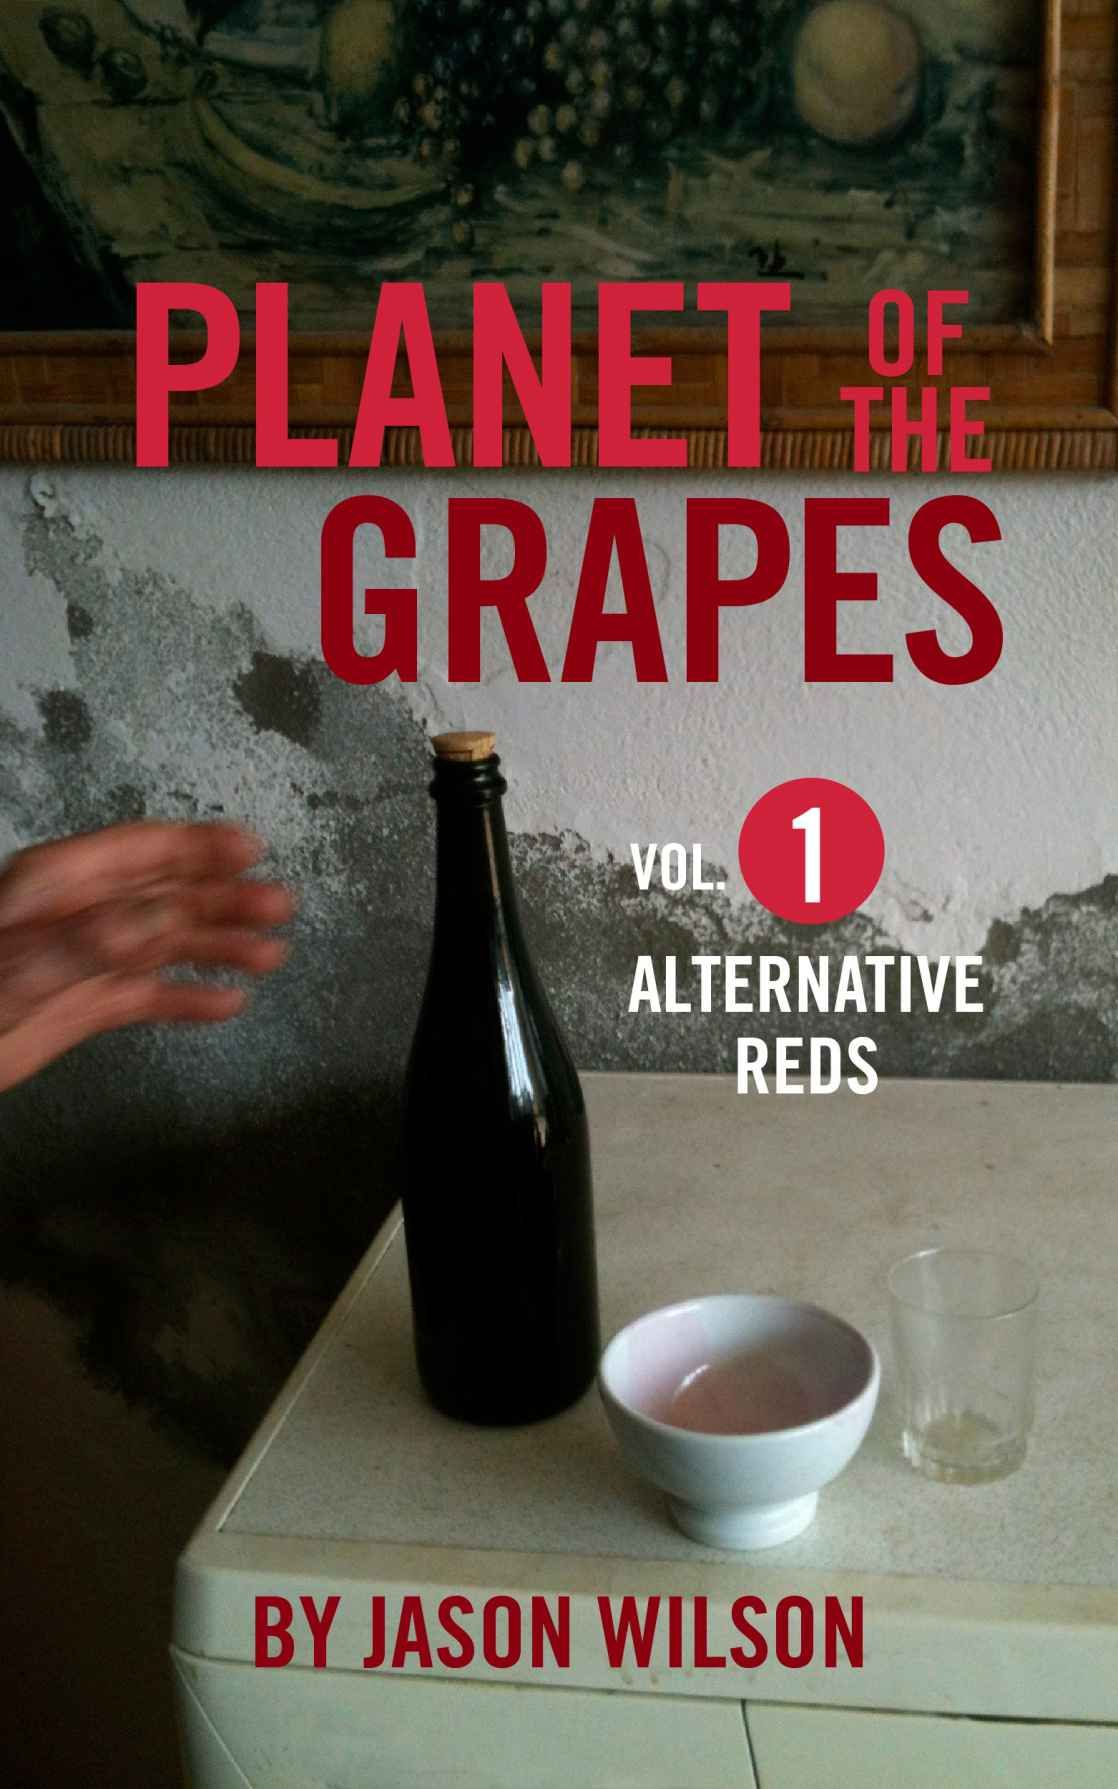 Planet Of The Grapes Volume 1 Alternative Reds Ebook By Jason Wilson This Ongoing Series Of Wine Guides Is Down To Earth And In Wine Guide Grapes Planets